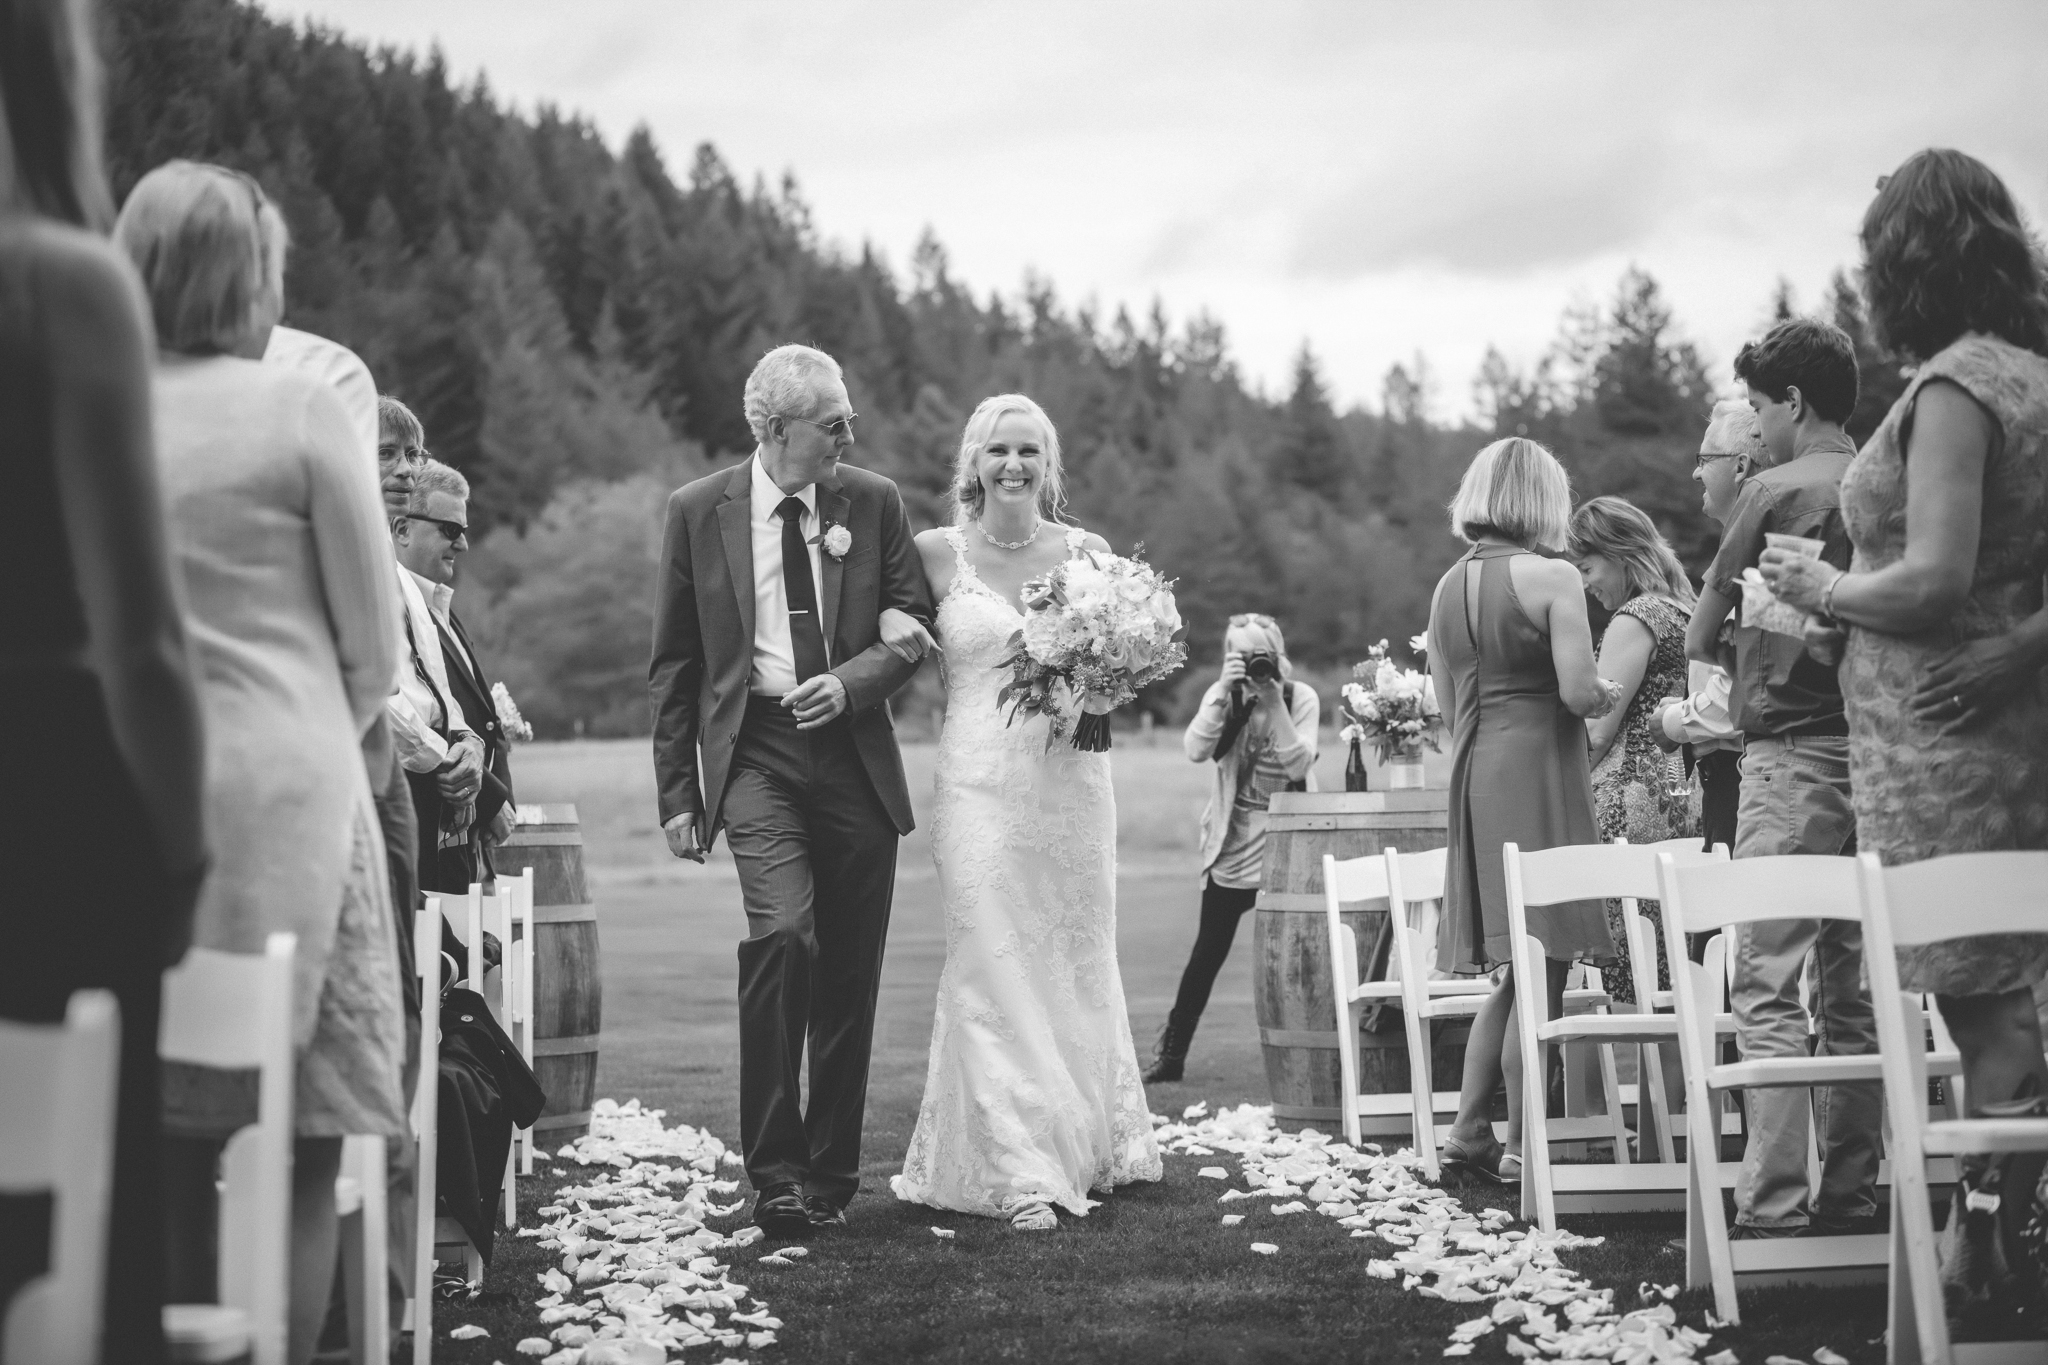 pomeroy farm portland seattle wedding photographer-20.jpg